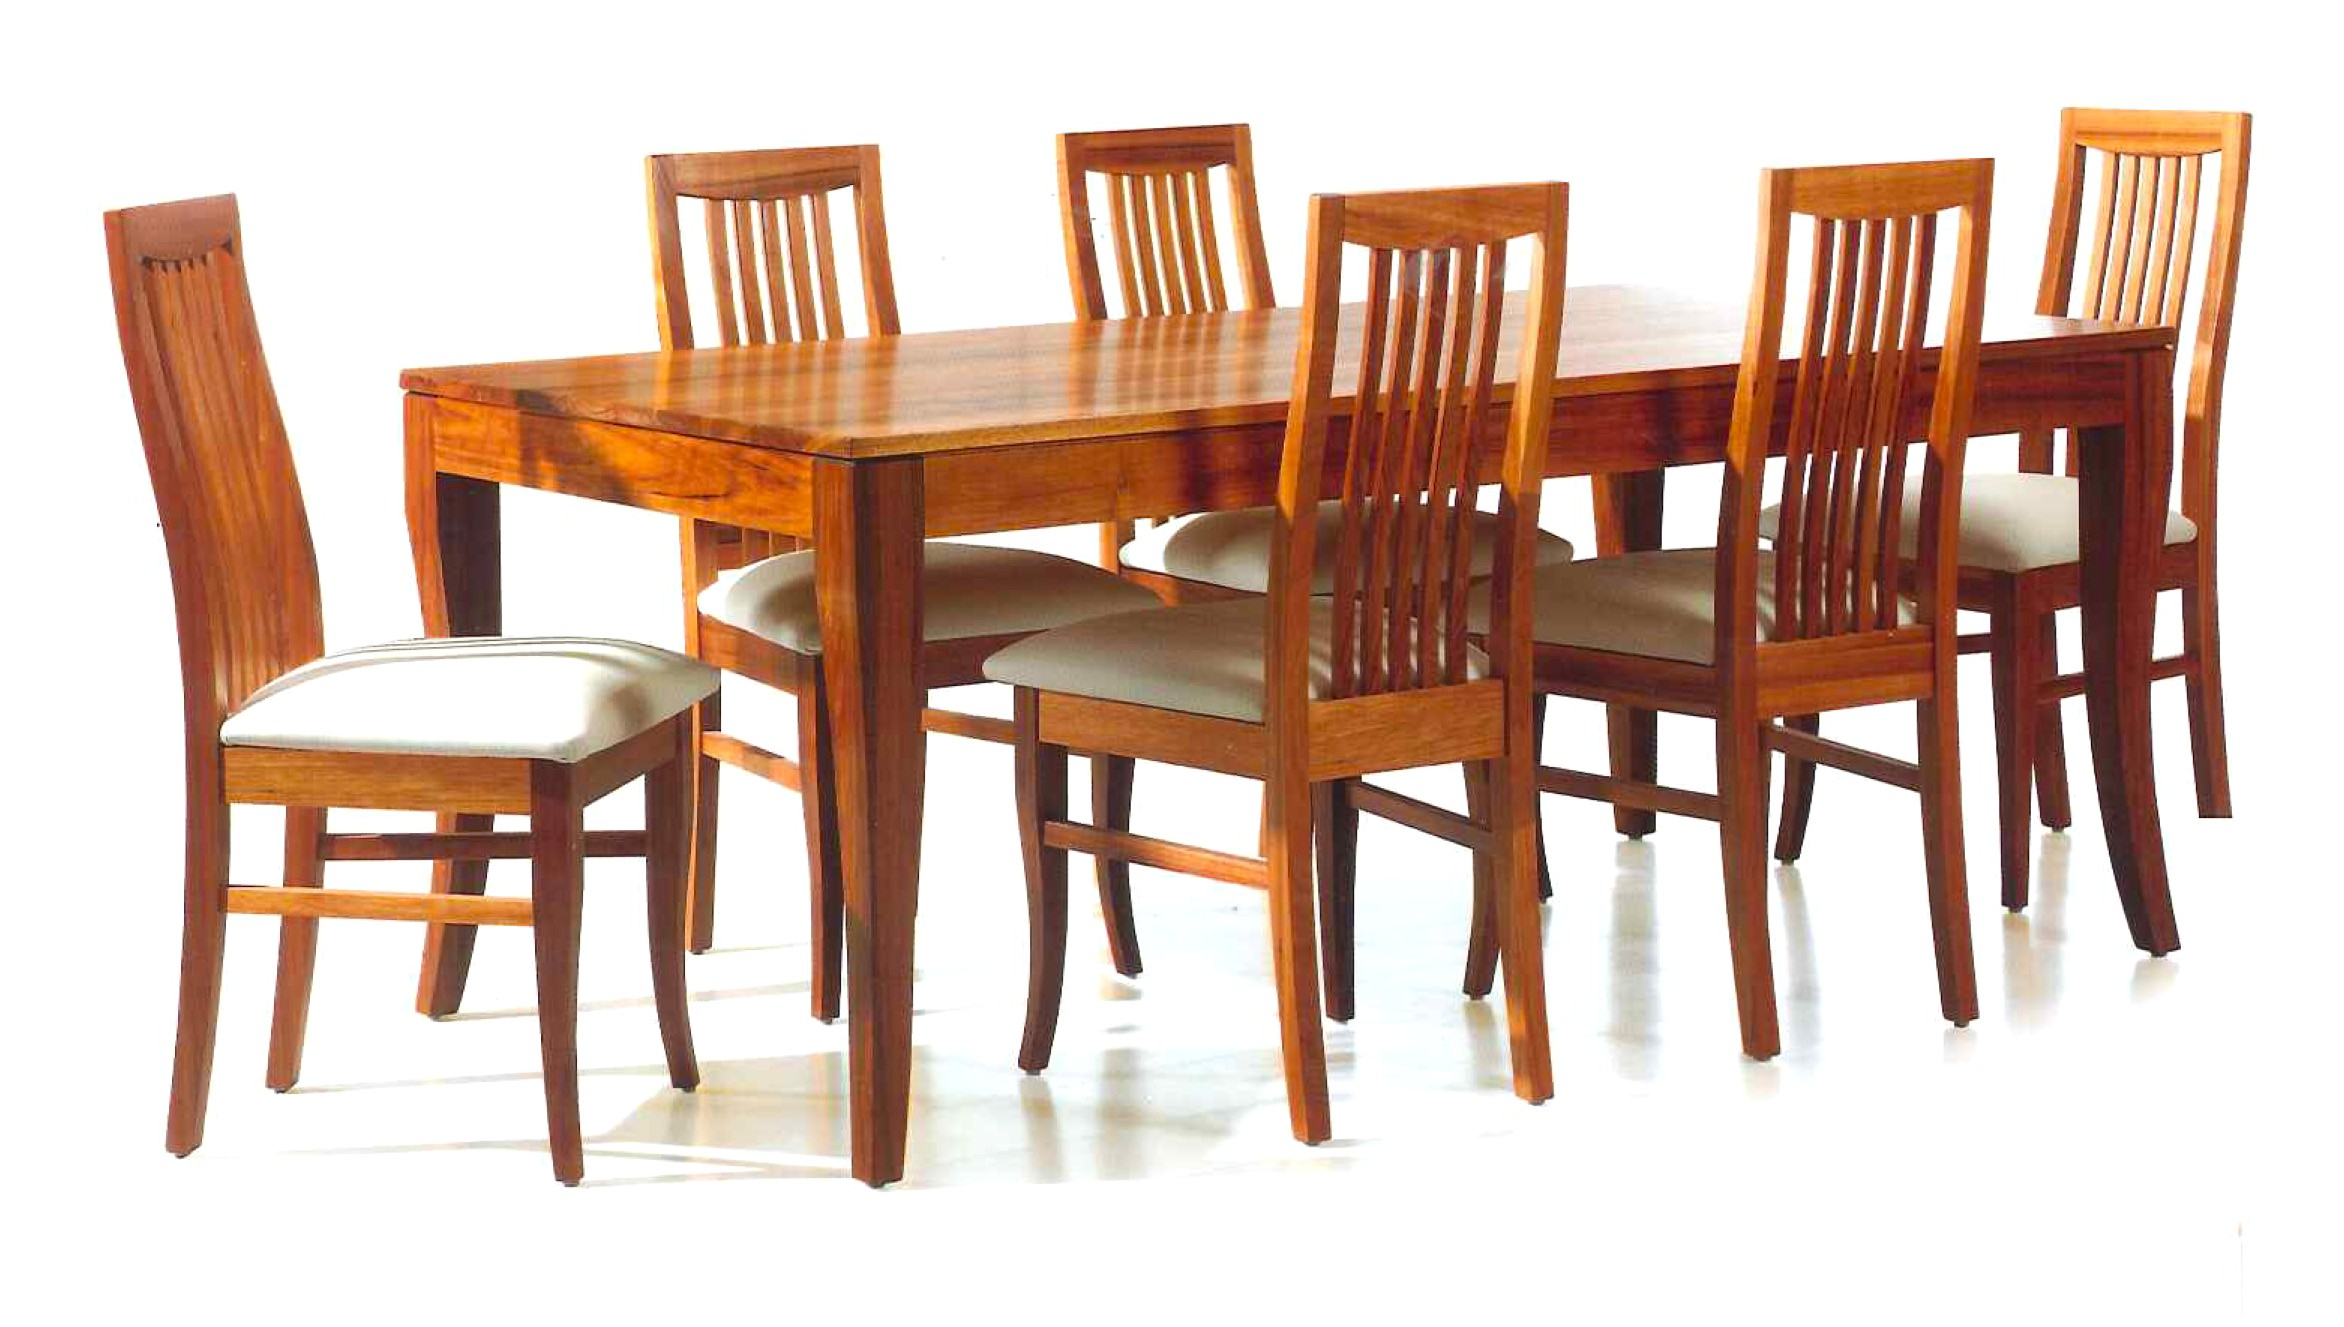 wooden dining tables and chairs photo - 7